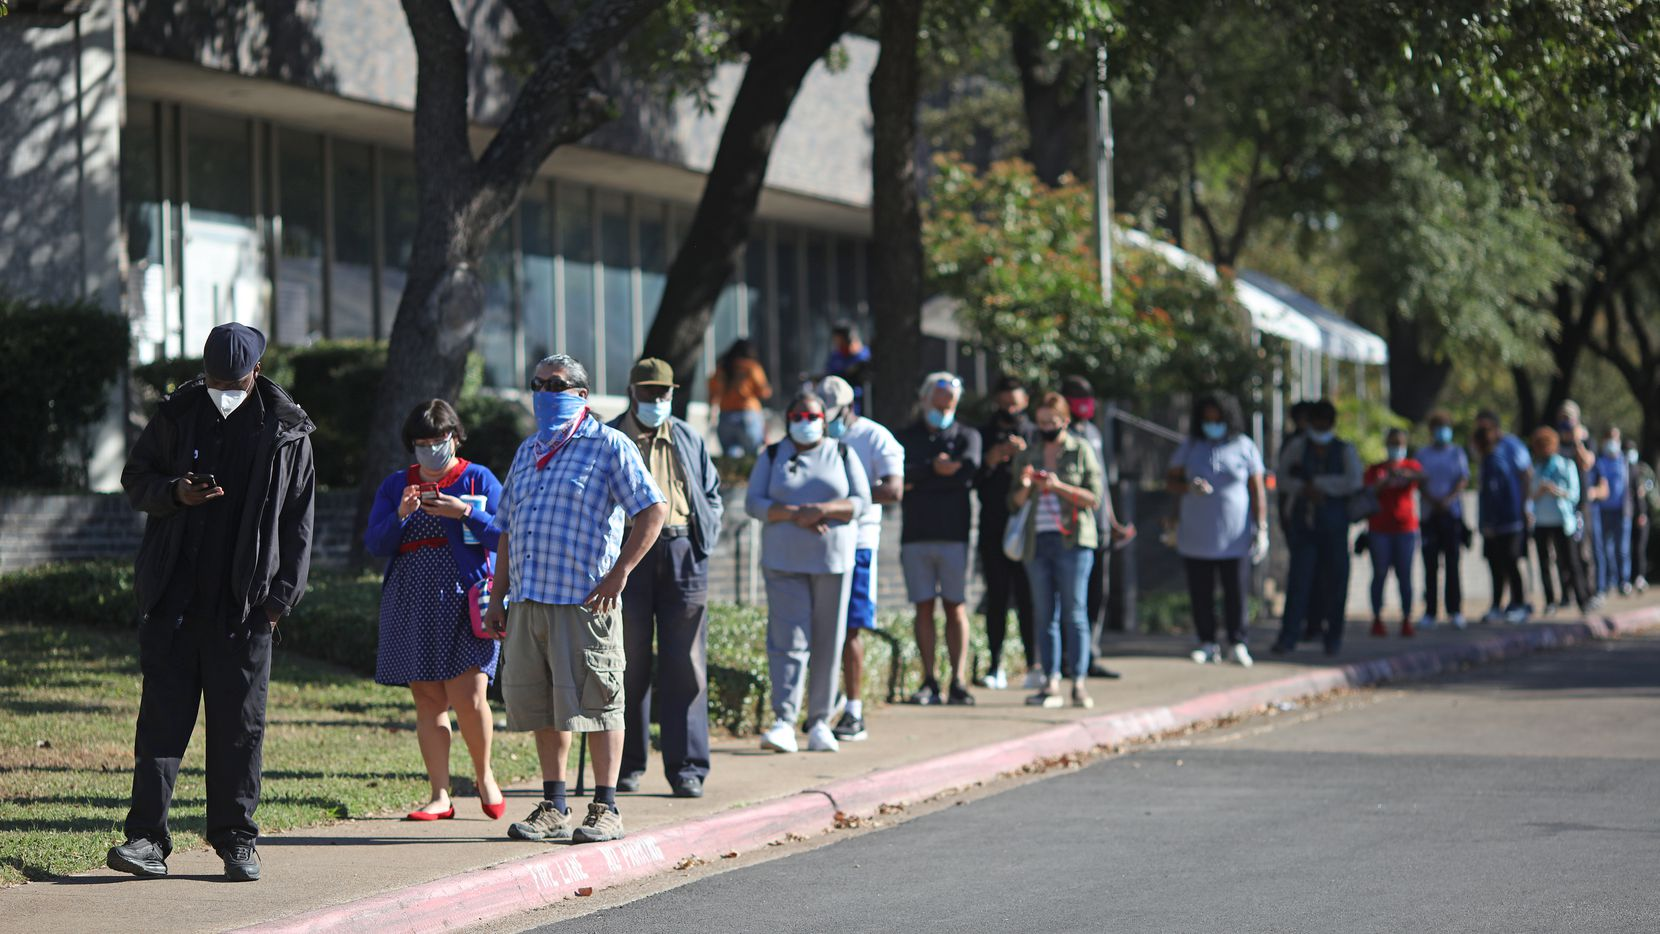 Voters wait in line to cast ballots during early voting in Dallas County